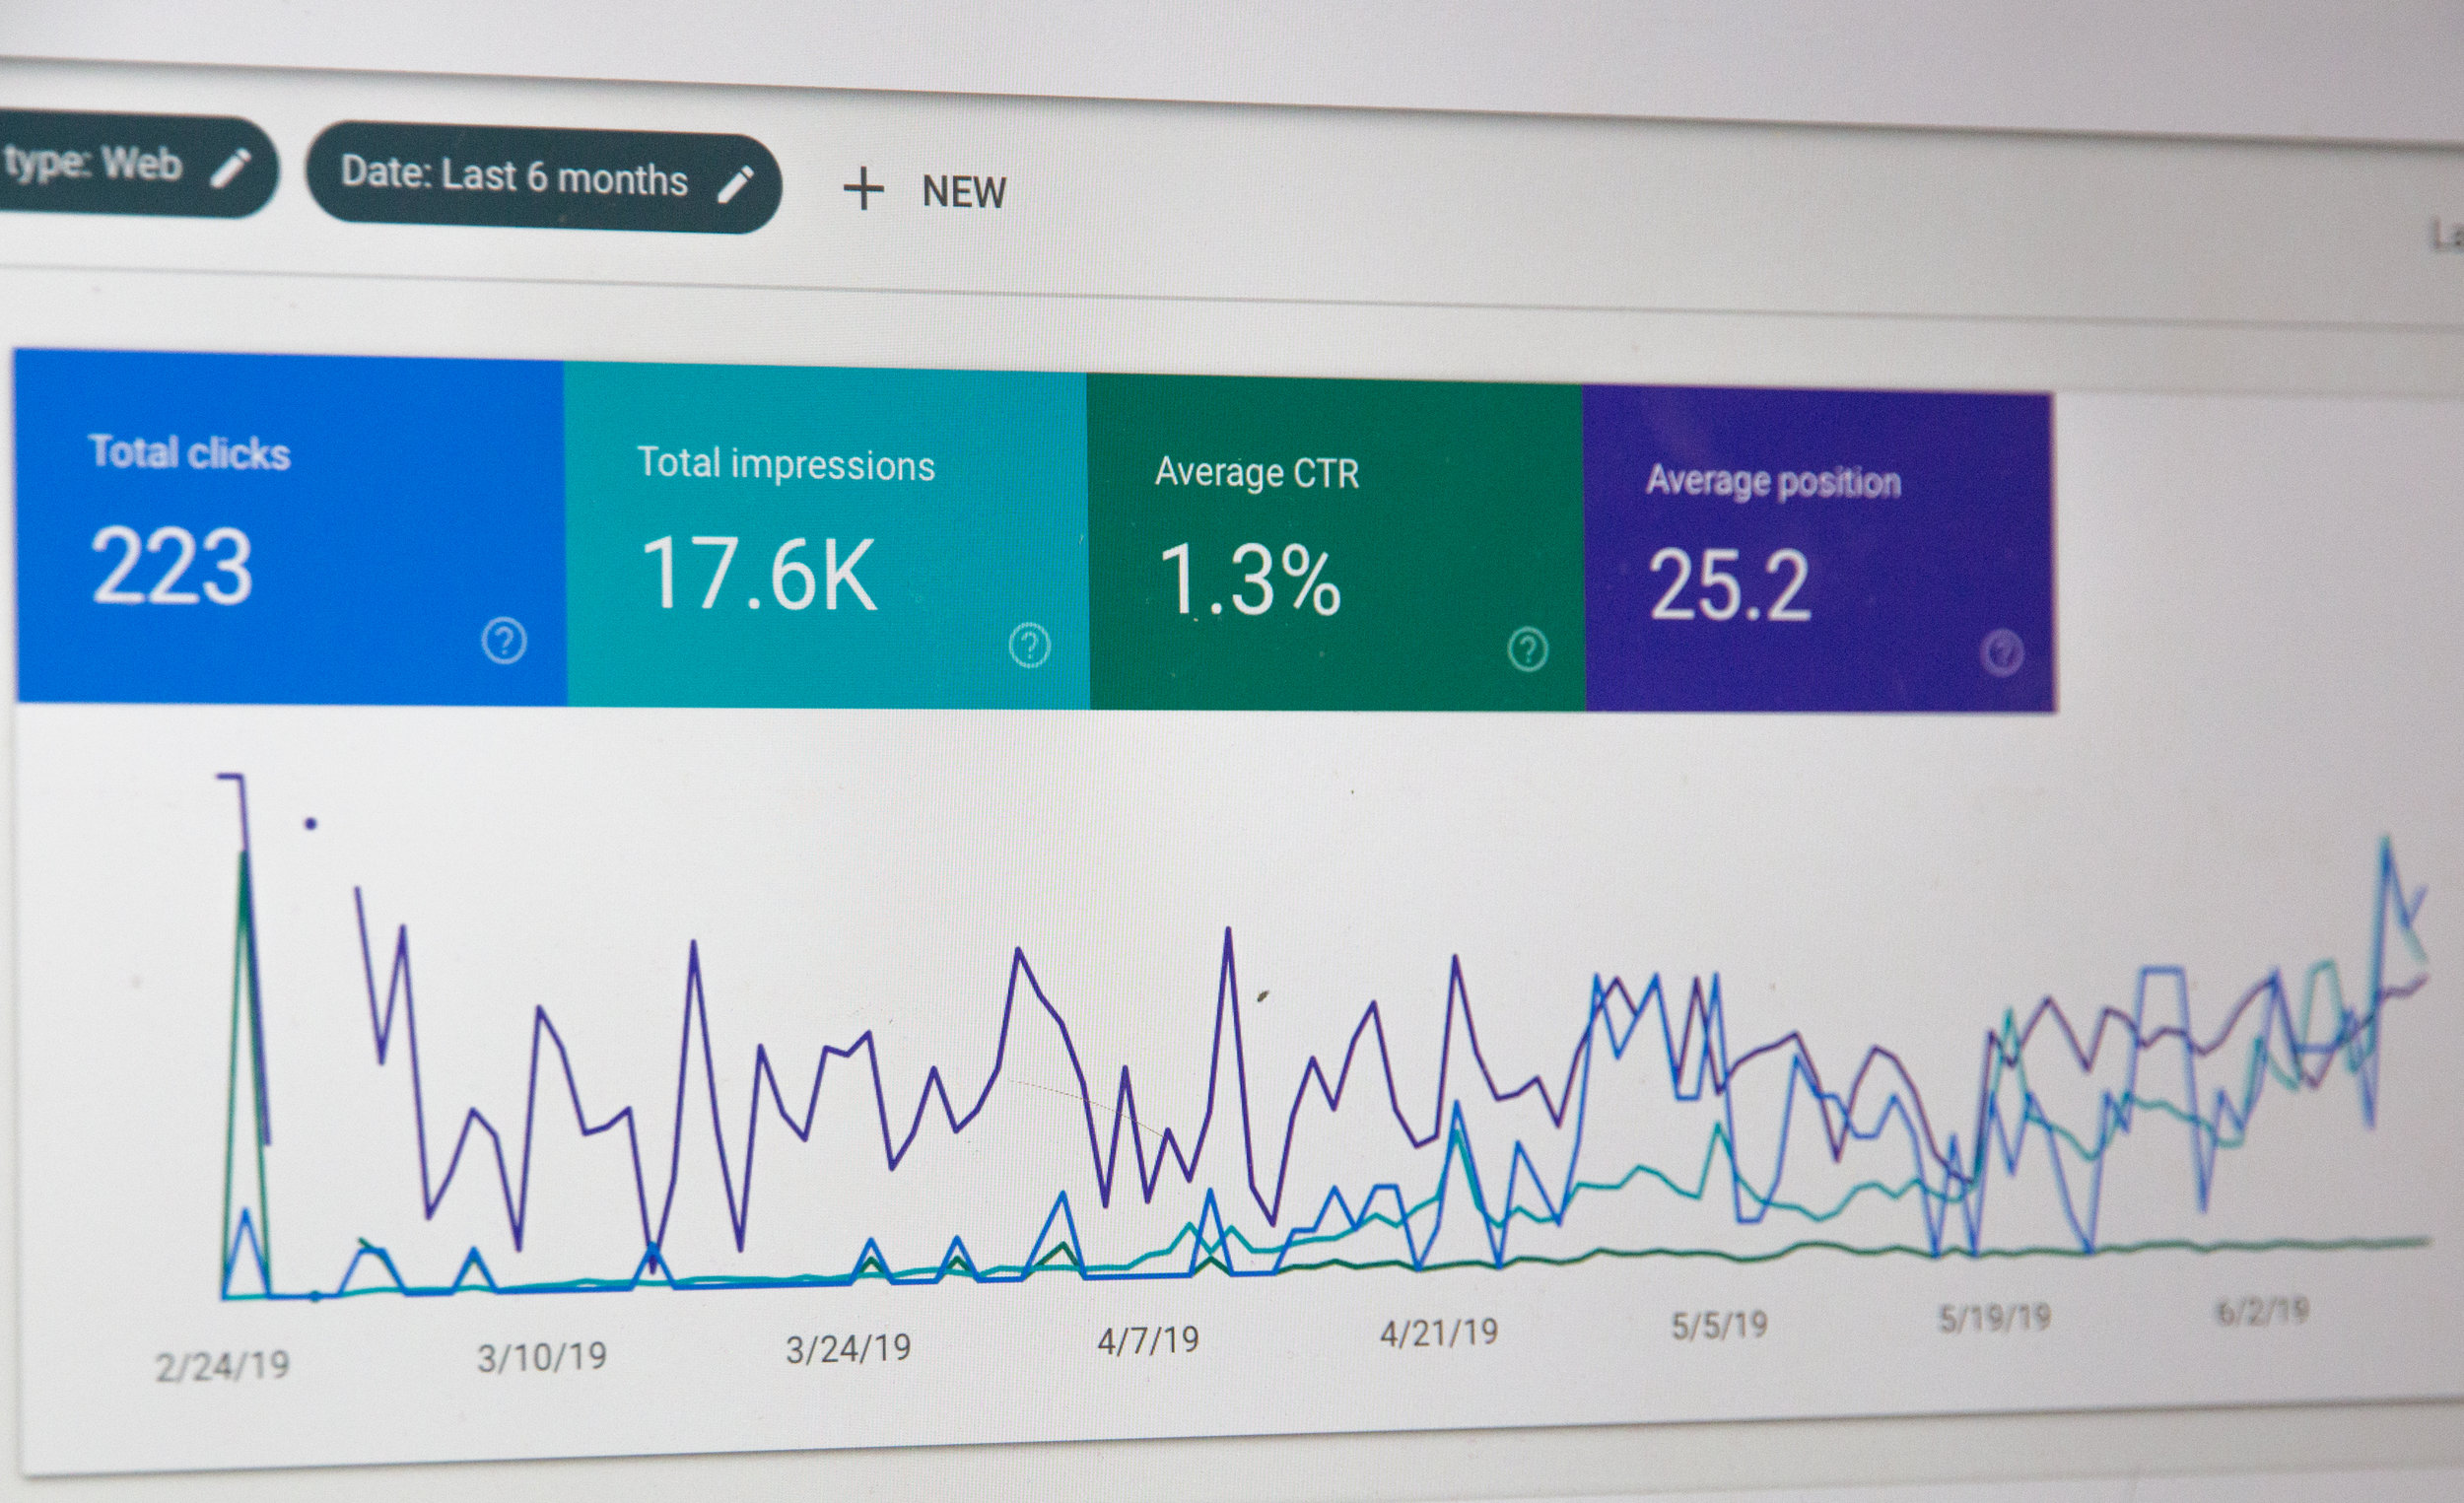 Reporting & Analytics - Pace campaigns daily to assure accurate spending & providing insights weekly to create better consumer insight to scale both on paid digital and any other internal uses.